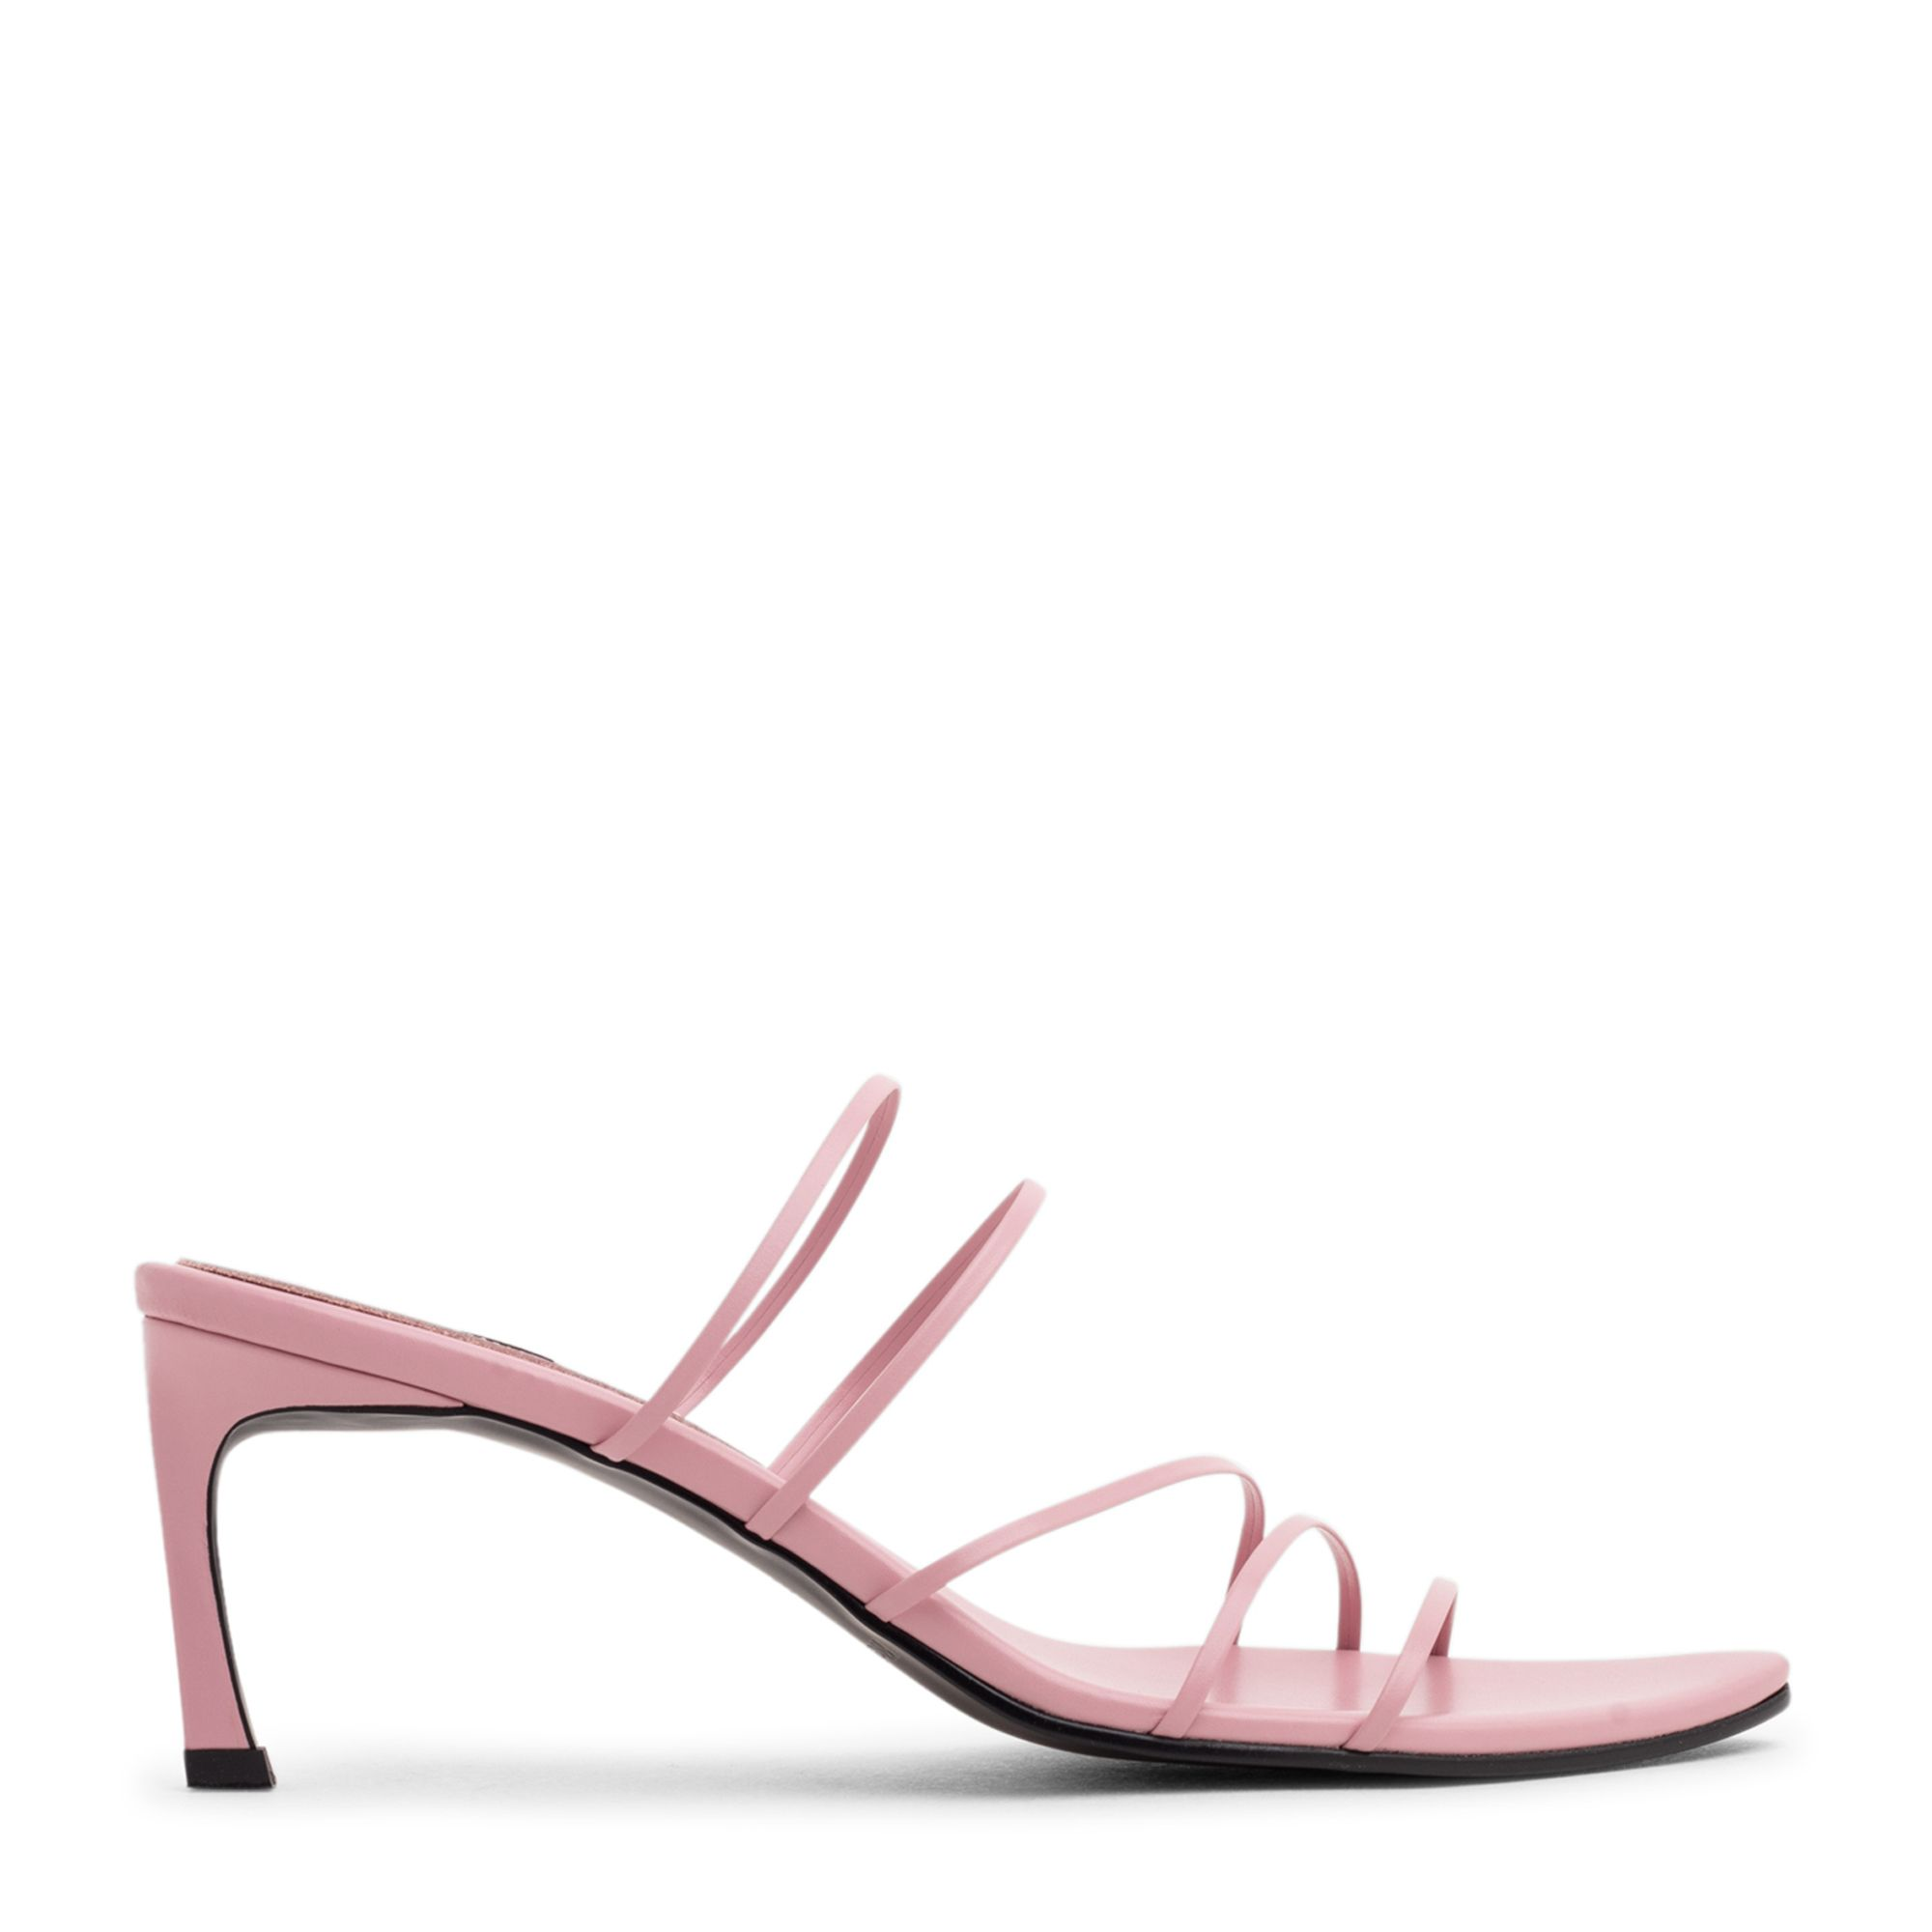 Exclusive 5 Strings pointed sandals